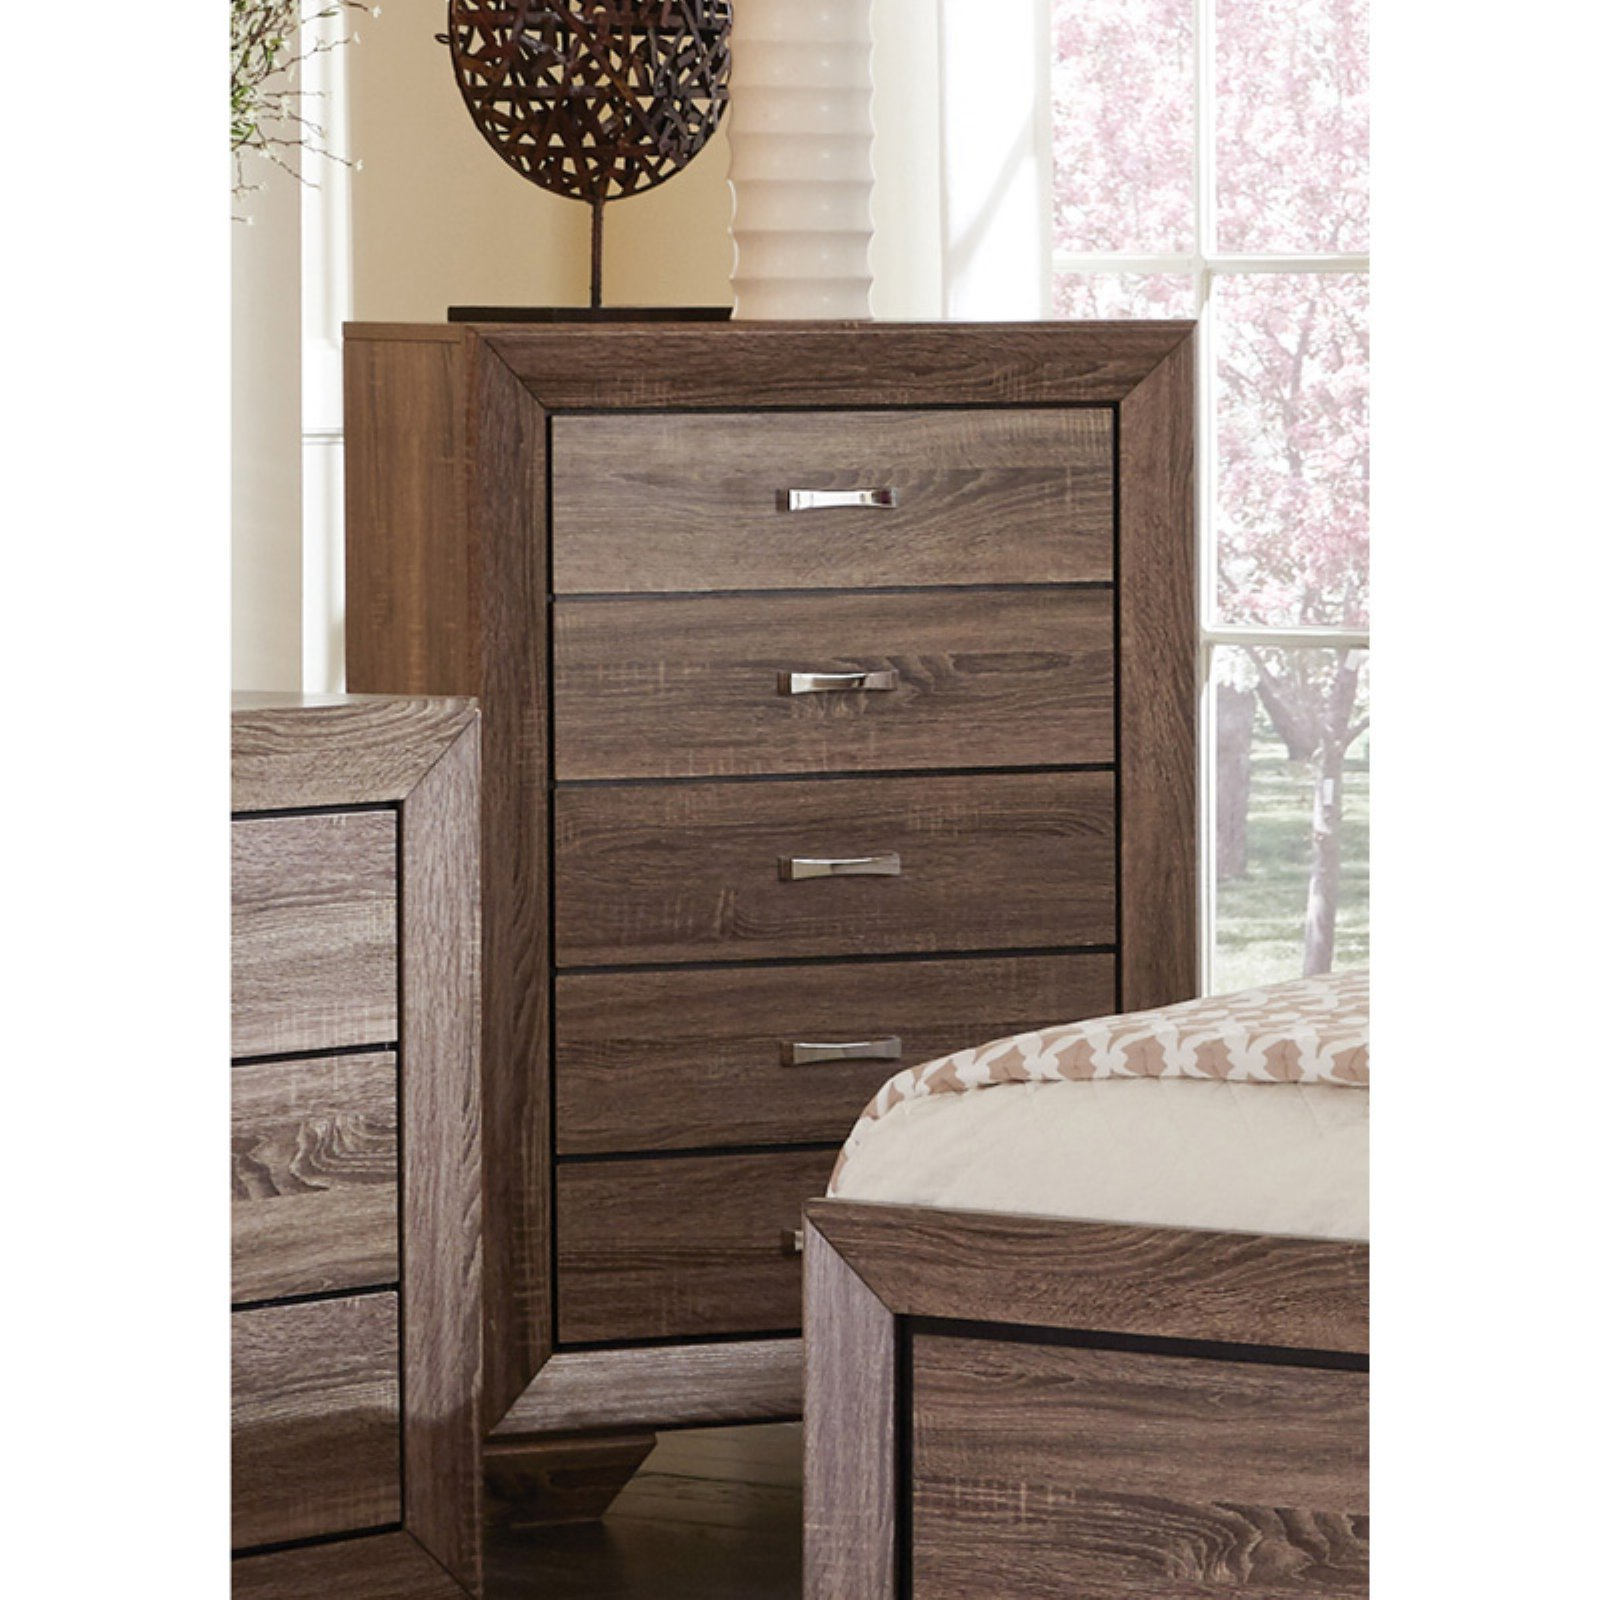 Coaster Company Kauffman 5 Drawer Chest, Washed Taupe